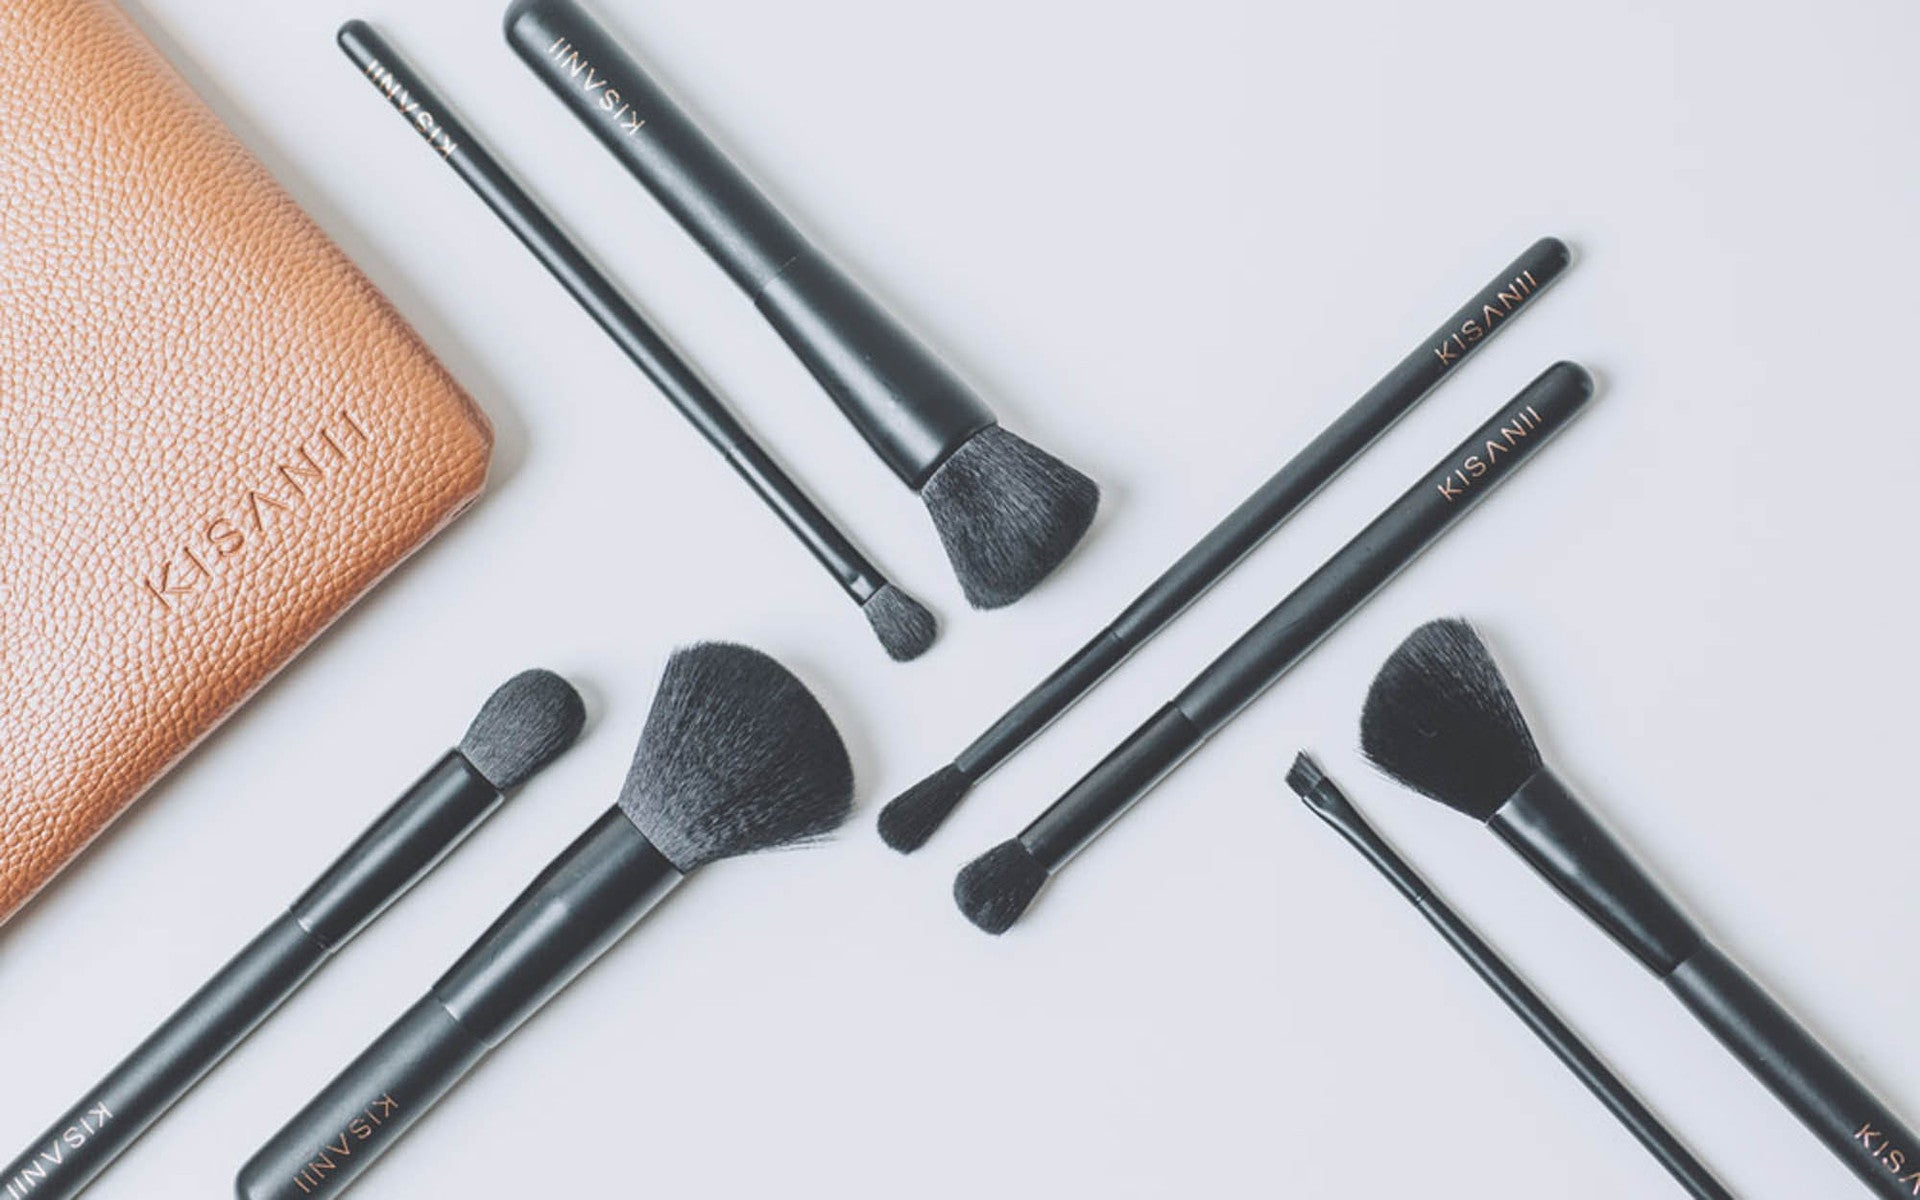 SUPER SOFT, CRUELTY-FREE MAKEUP BRUSHES